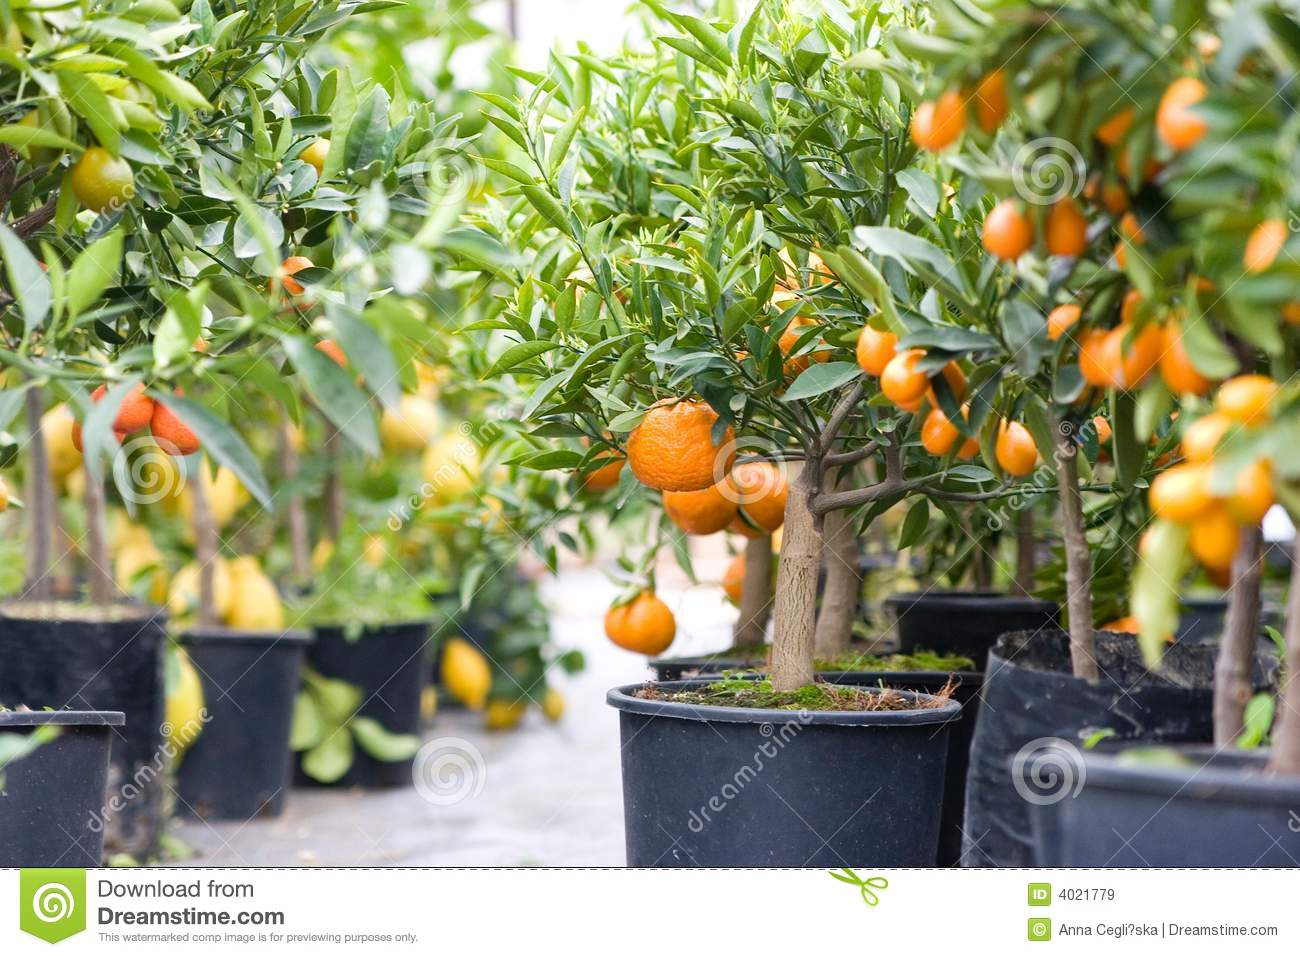 Citrus garden full of small trees